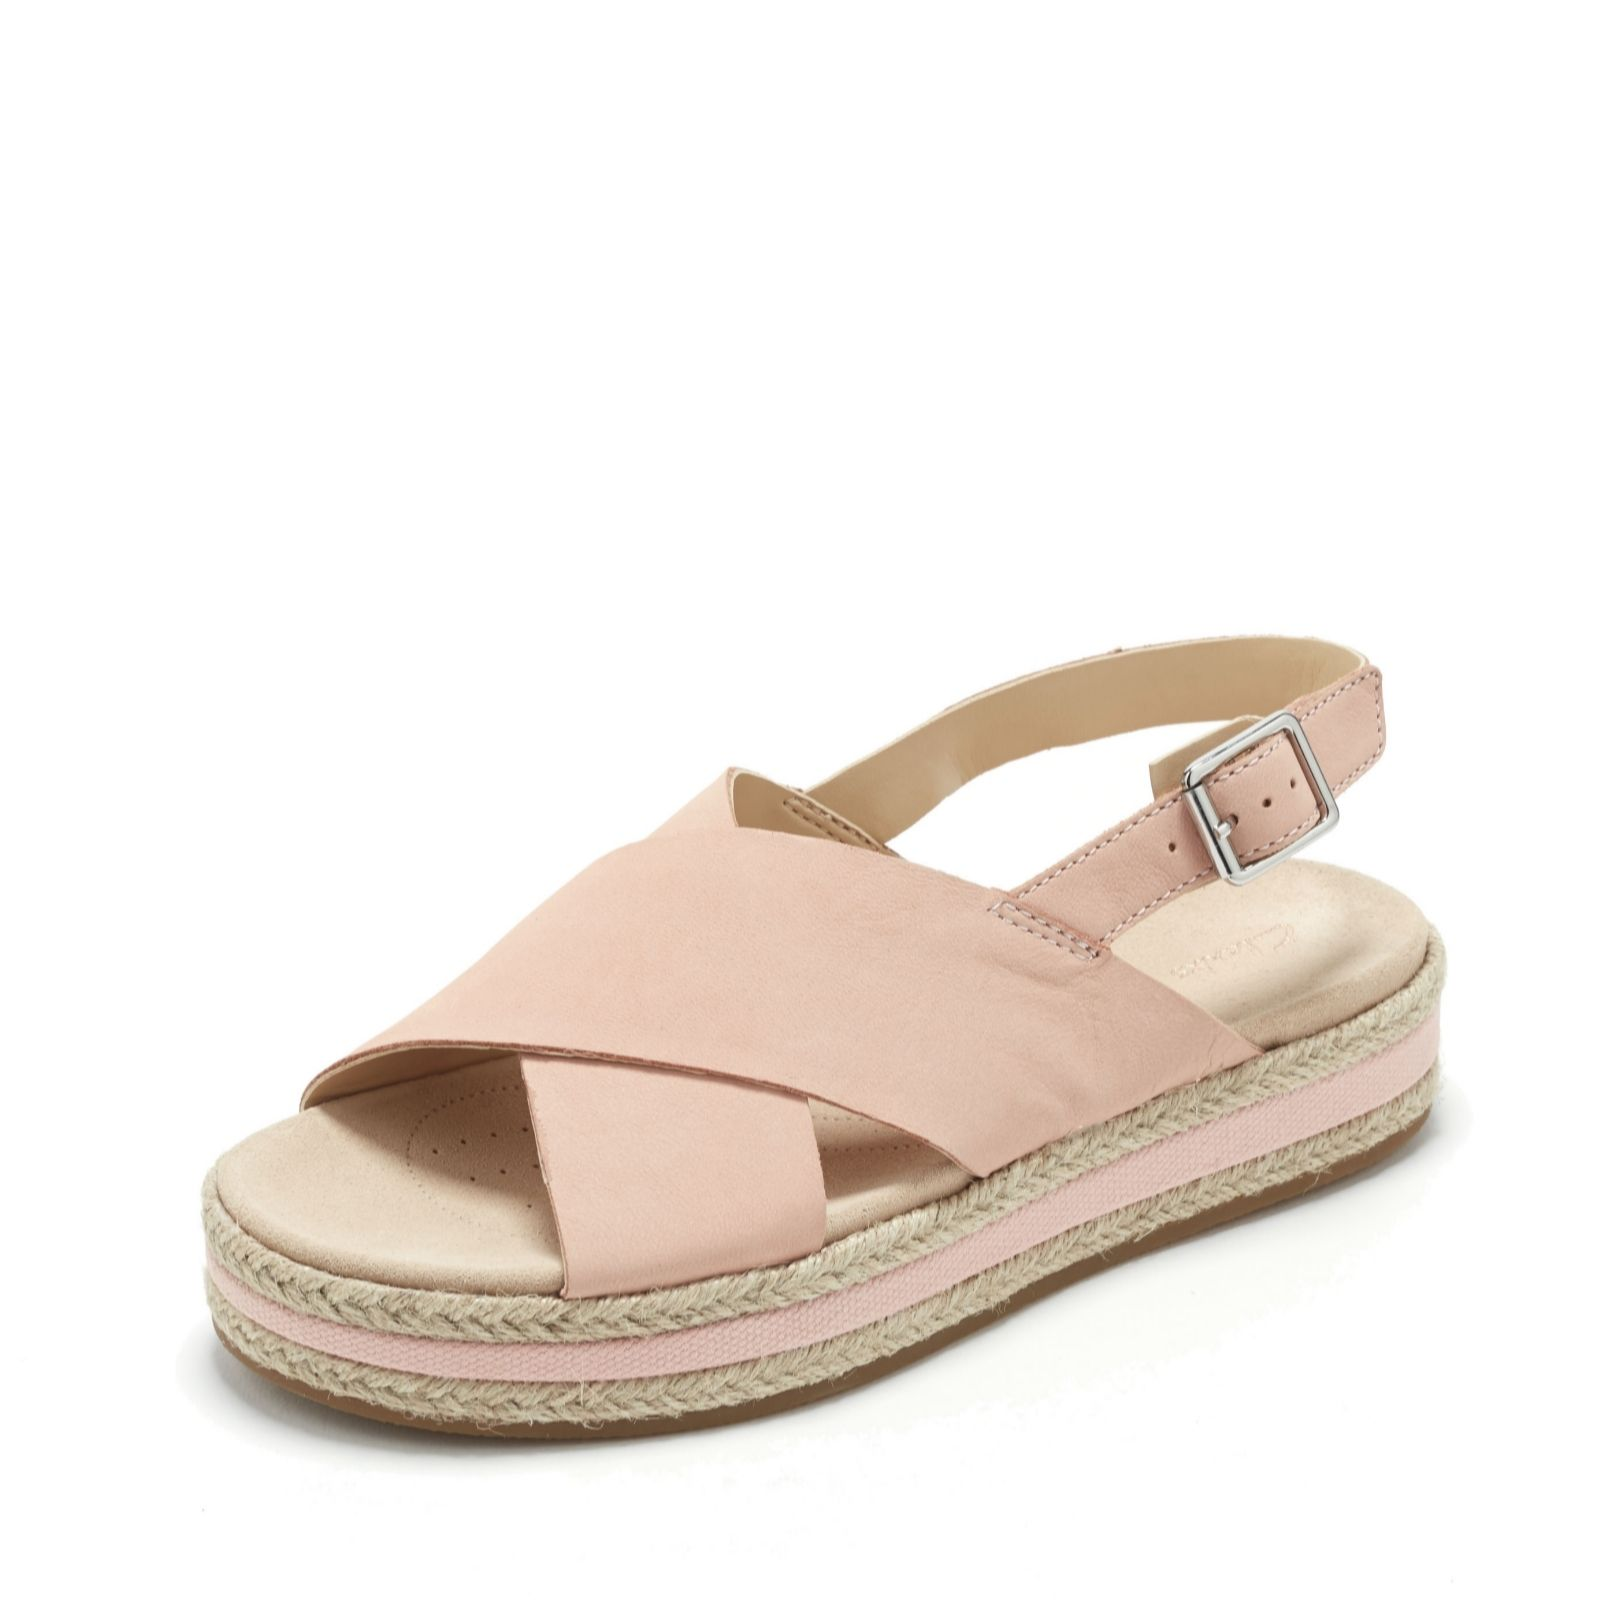 cf2dc721 Clarks Botanic Fay Cross Over Sandal Standard Fit - QVC UK